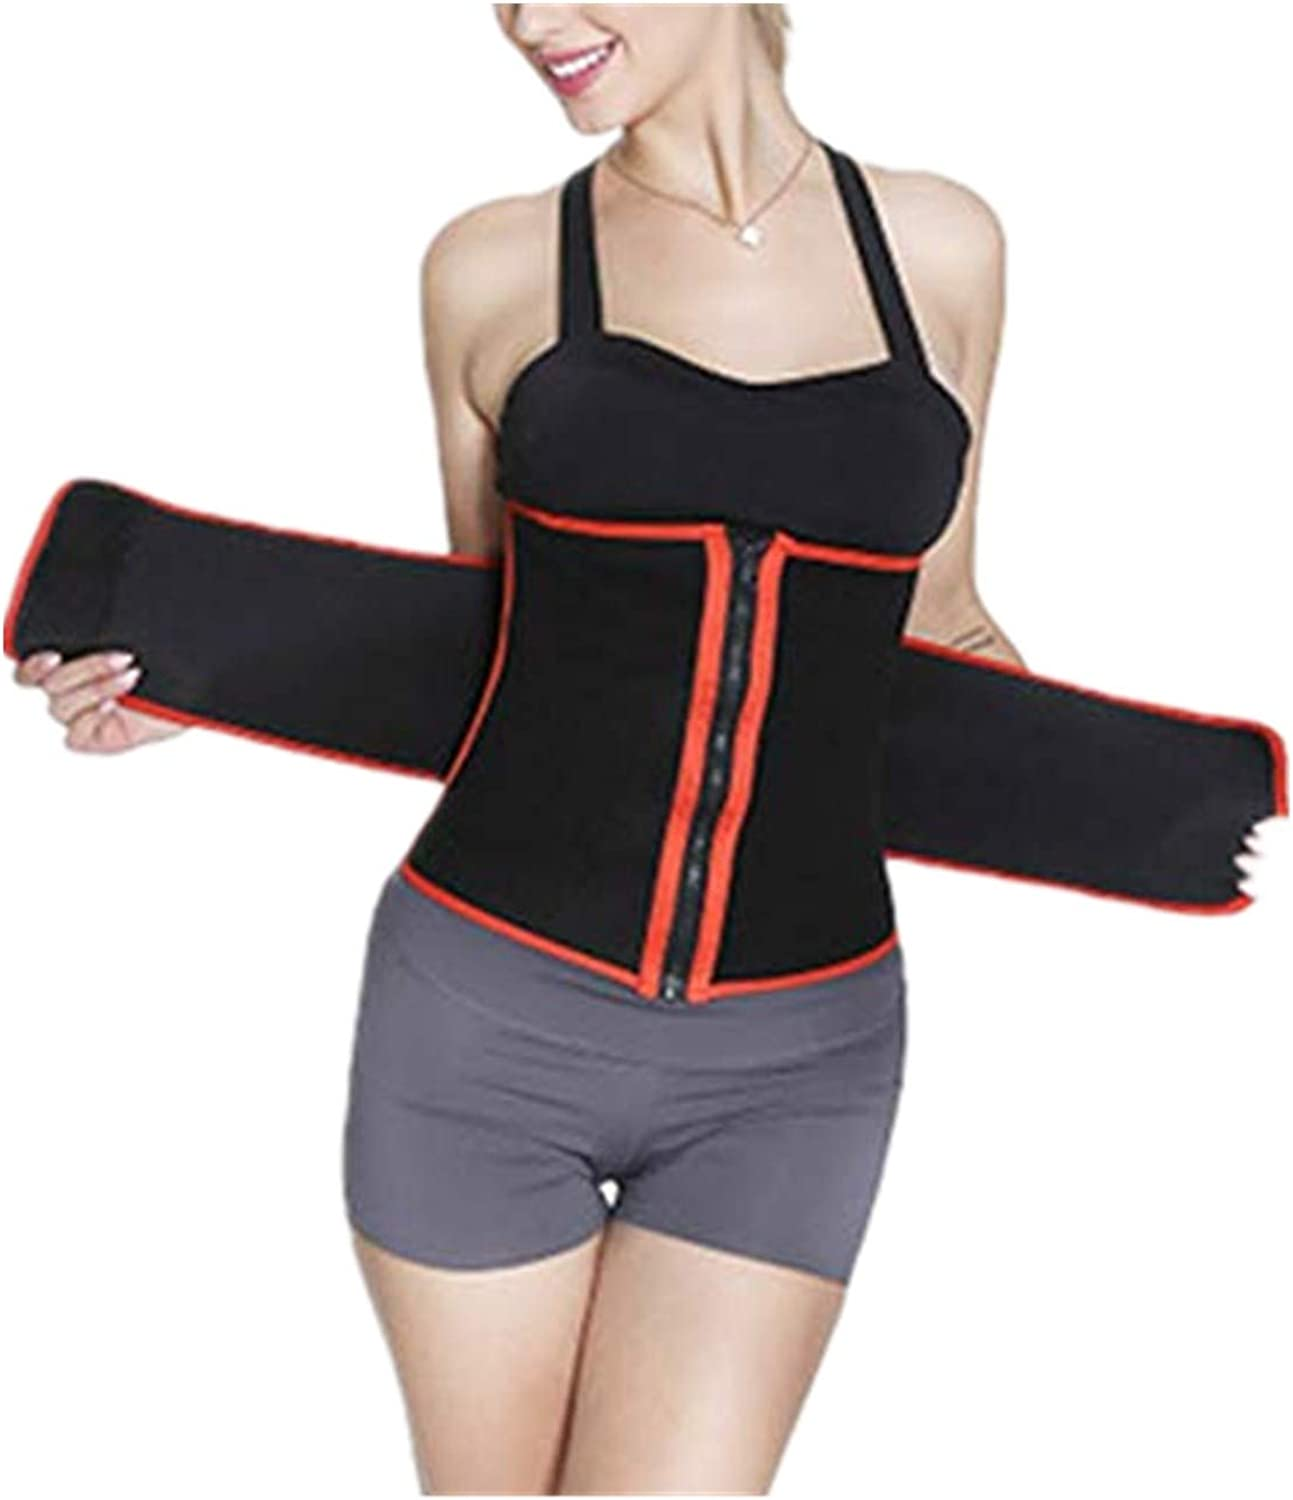 Fankle Women Waist Trainer Belt Tummy Control Sweat Girdle Workout Slim Belly Band for Weight Loss